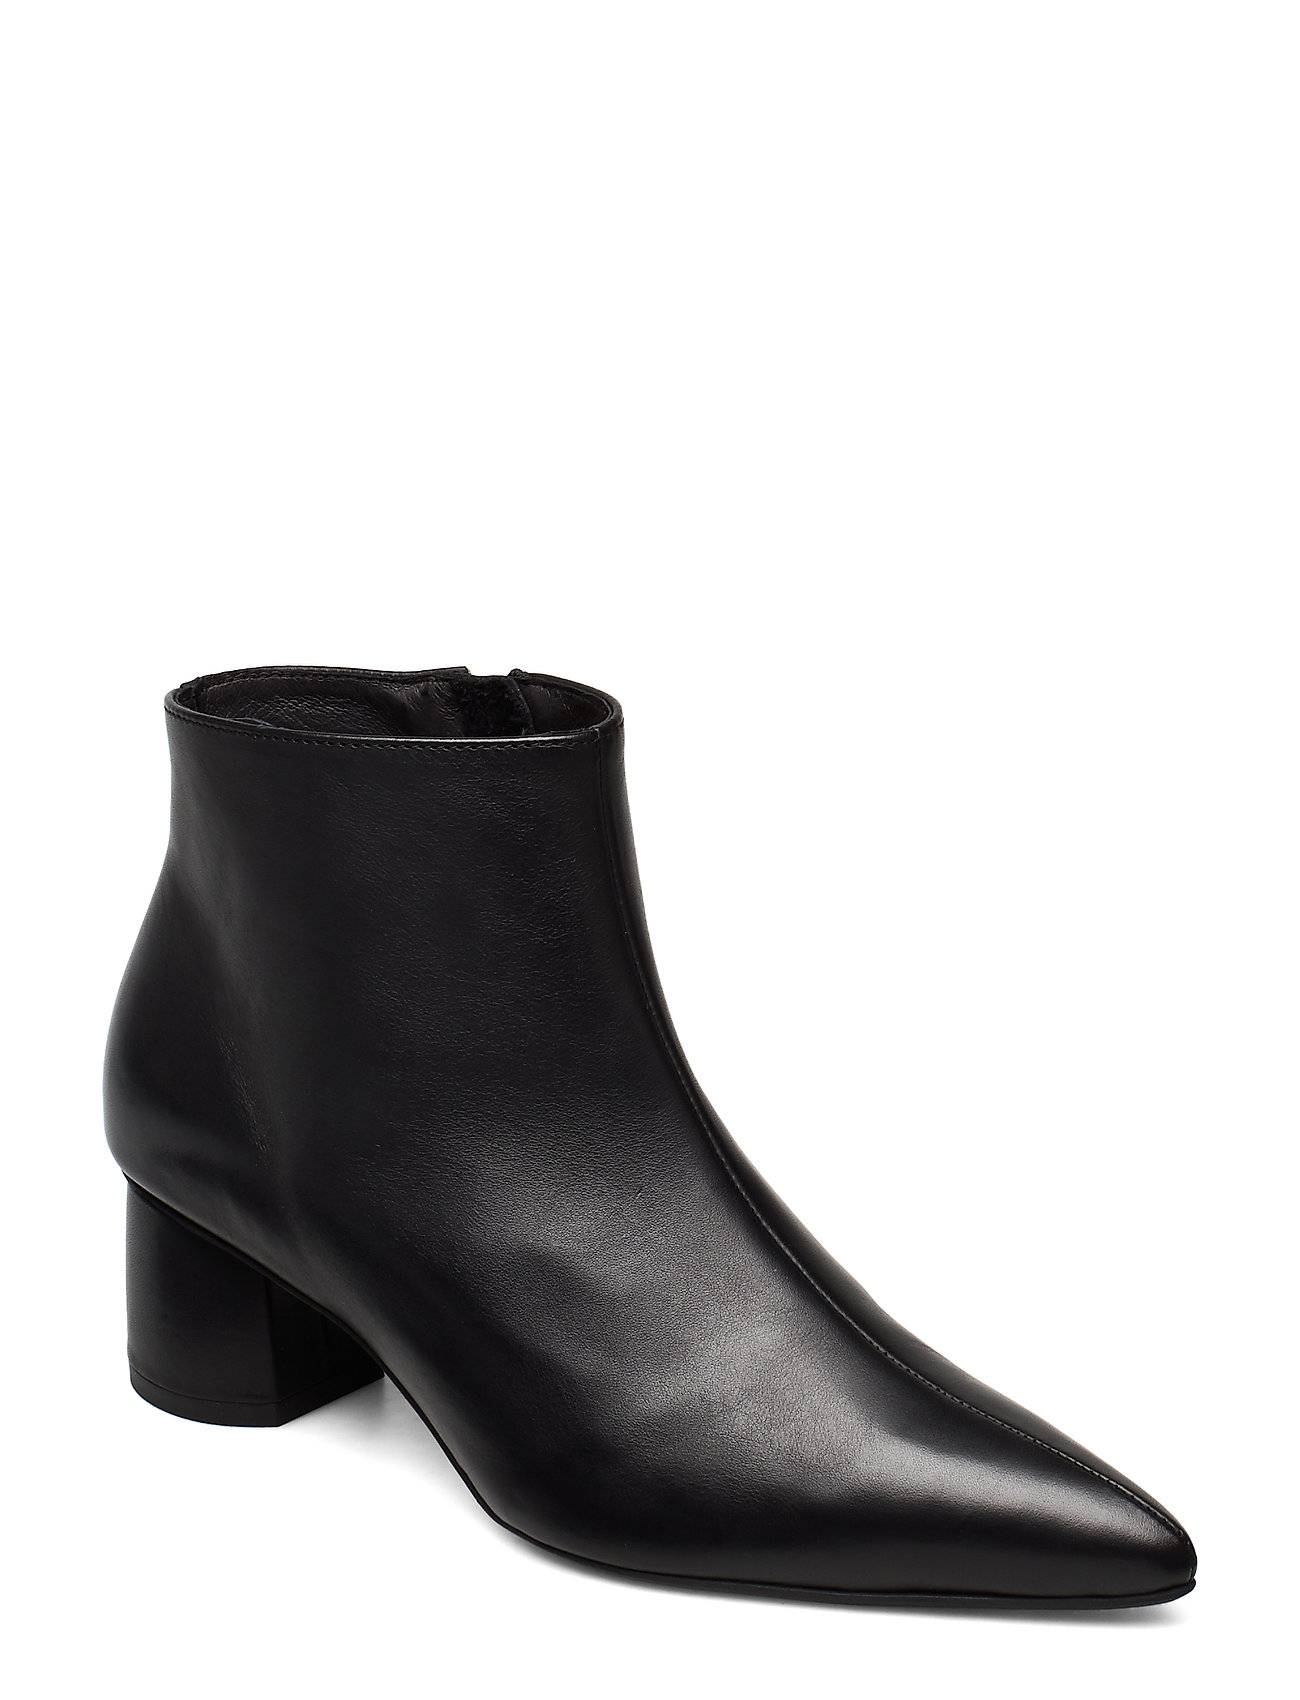 ANNY NORD To The Moon And Back Shoes Boots Ankle Boots Ankle Boot - Heel Musta ANNY NORD